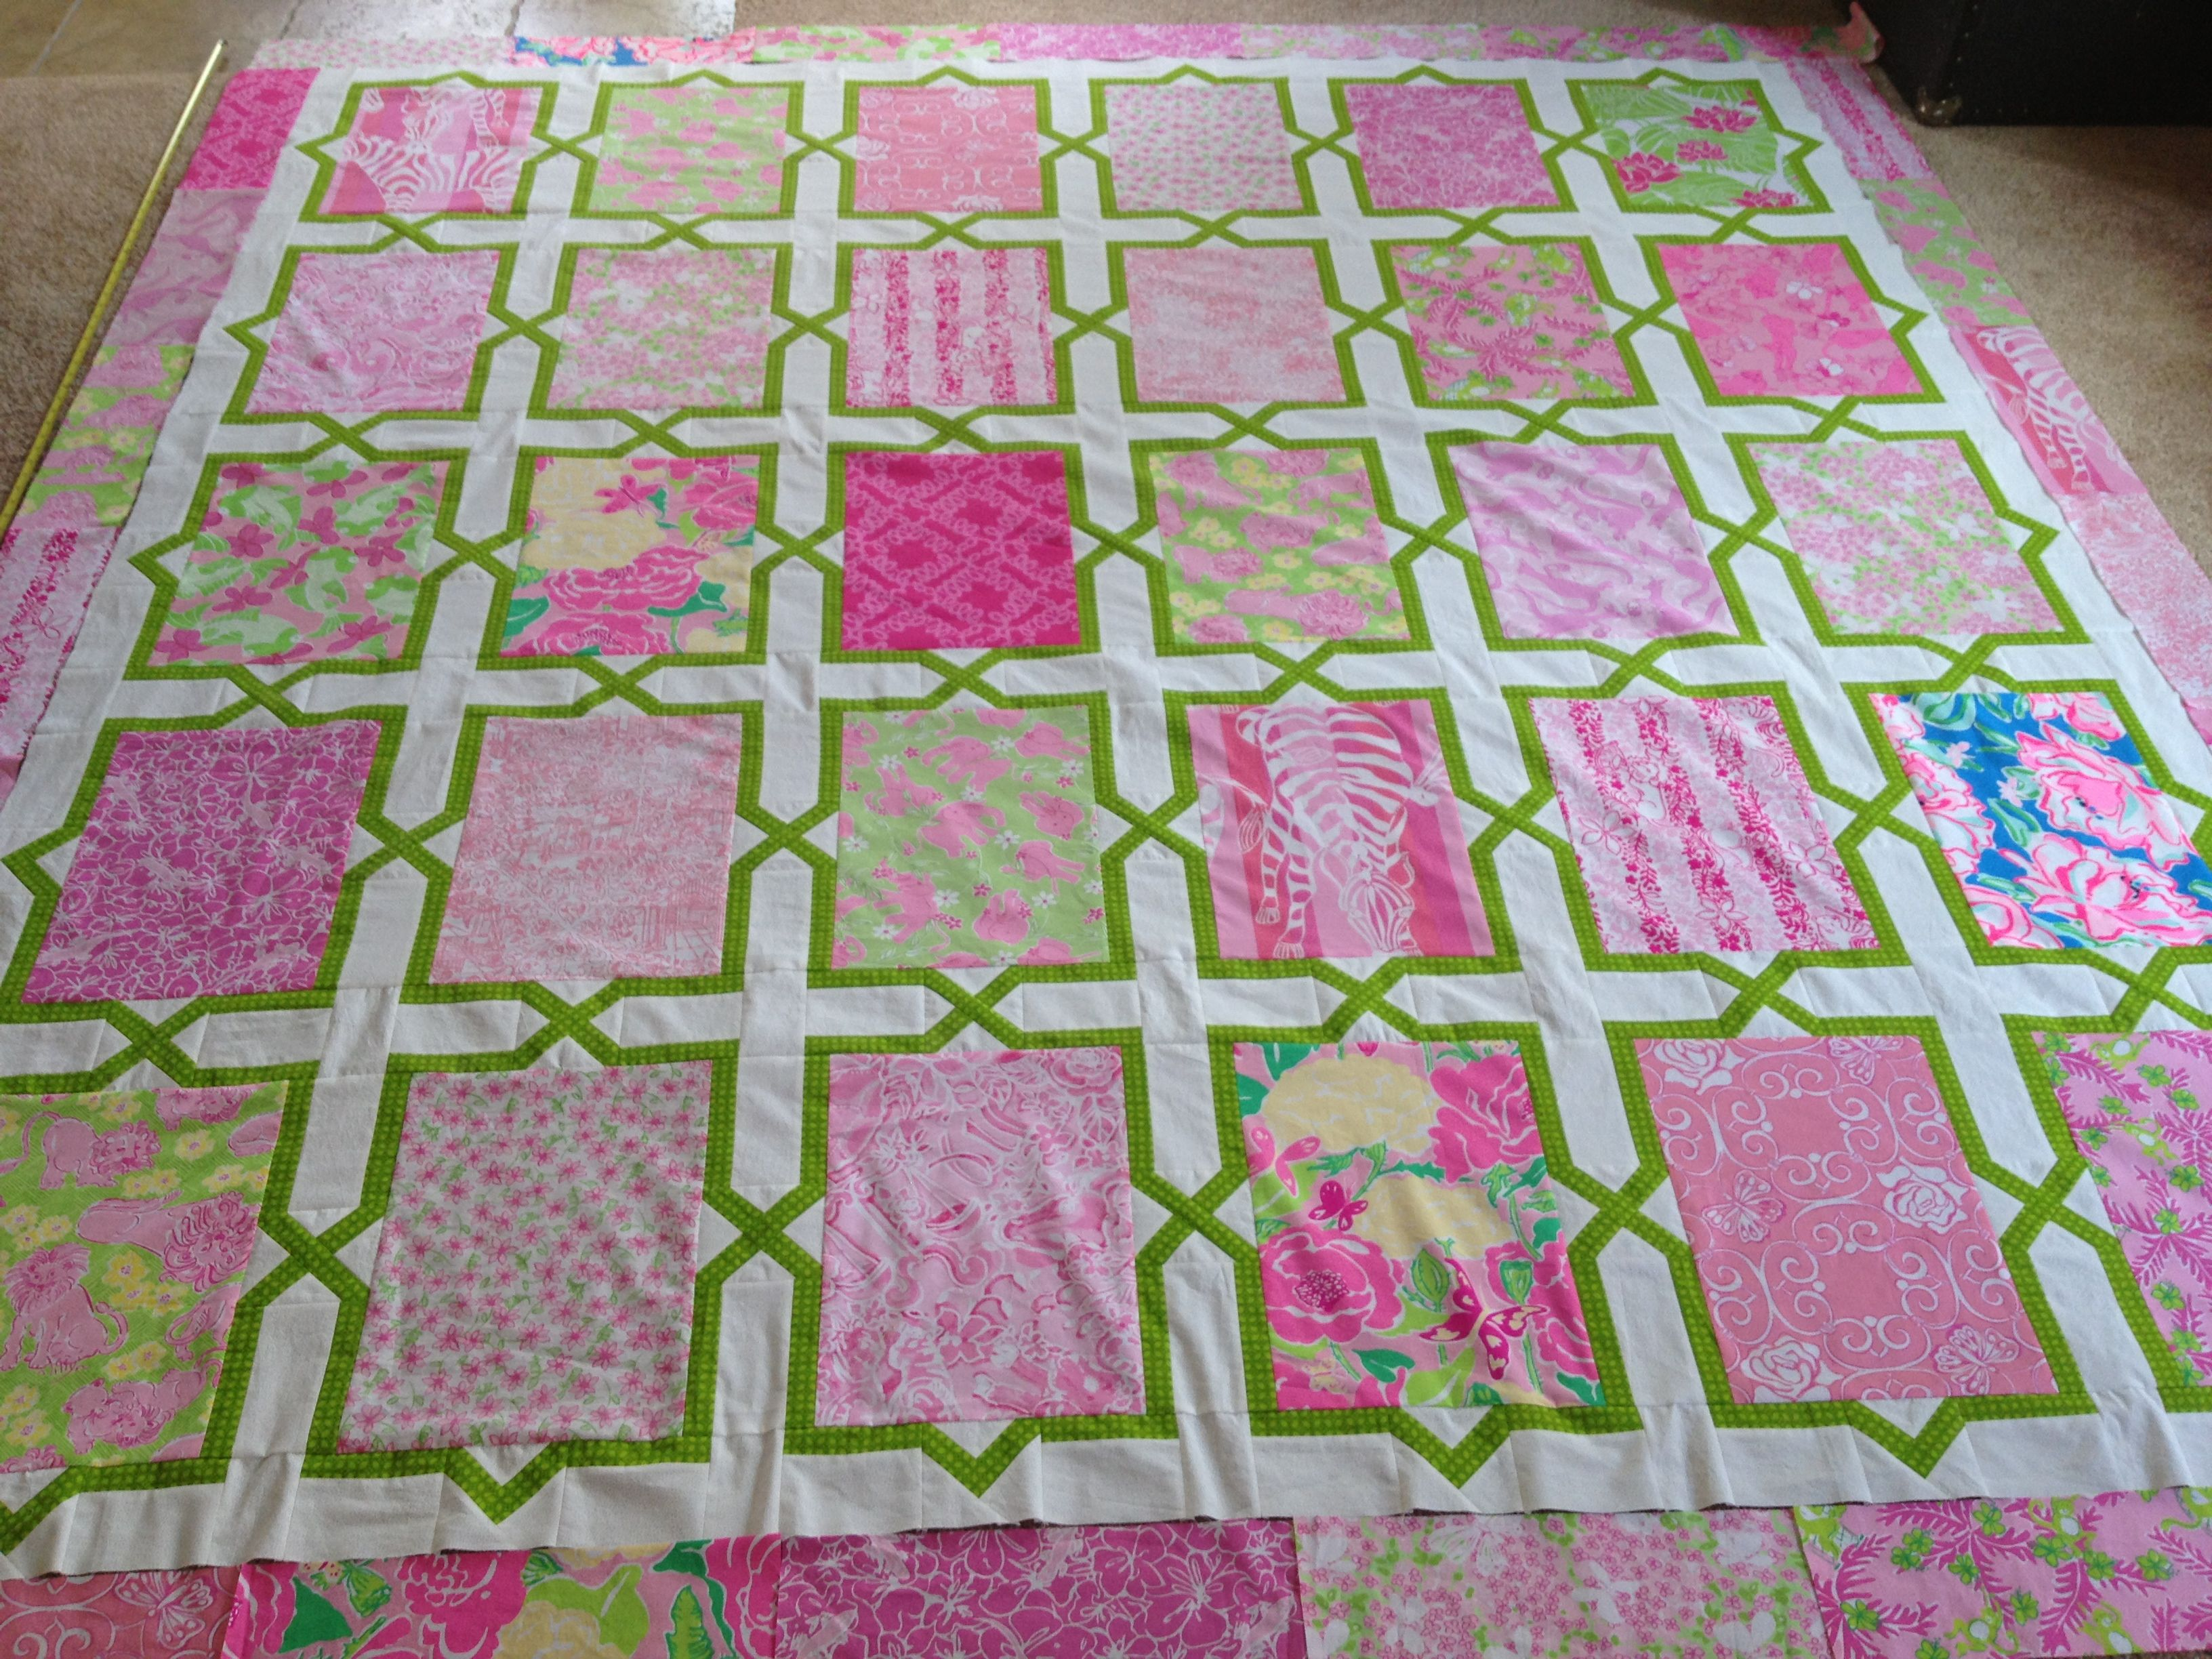 Glomorous Lilly Quilt Lilly Pulitzer Hmh Designs Lilly Pulitzer Fabrics By Yard Lilly Pulitzer Fabric Squares houzz-02 Lilly Pulitzer Fabric